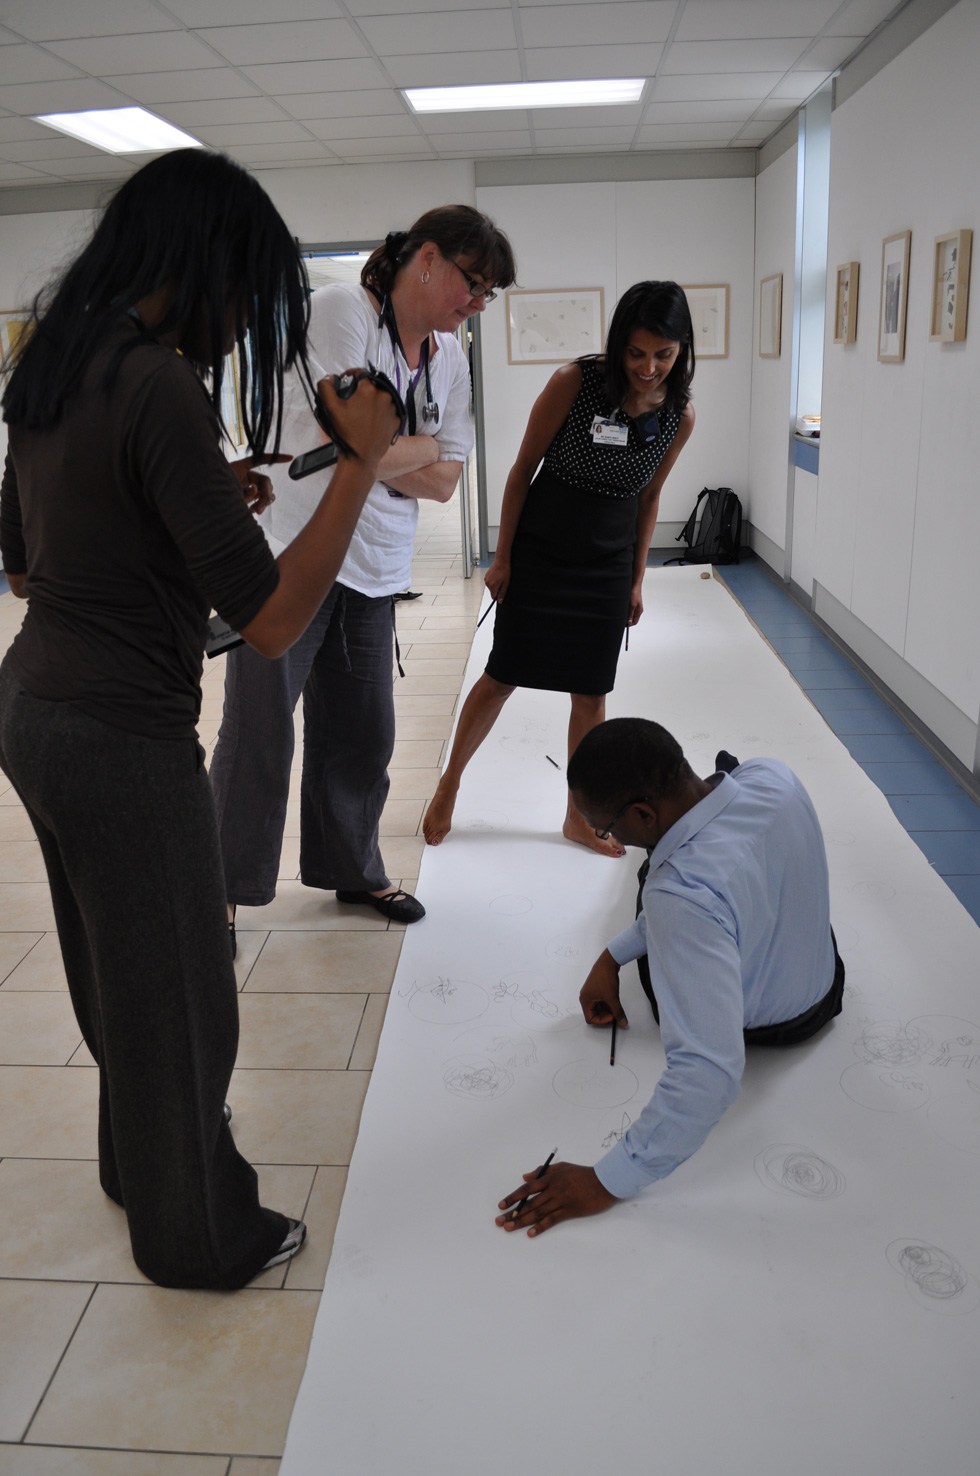 Drawing Examination, 2011, Elixir Gallery, Queen Elizabeth Hospital, Woolwich. Photo: Angela Hodgson-Teall